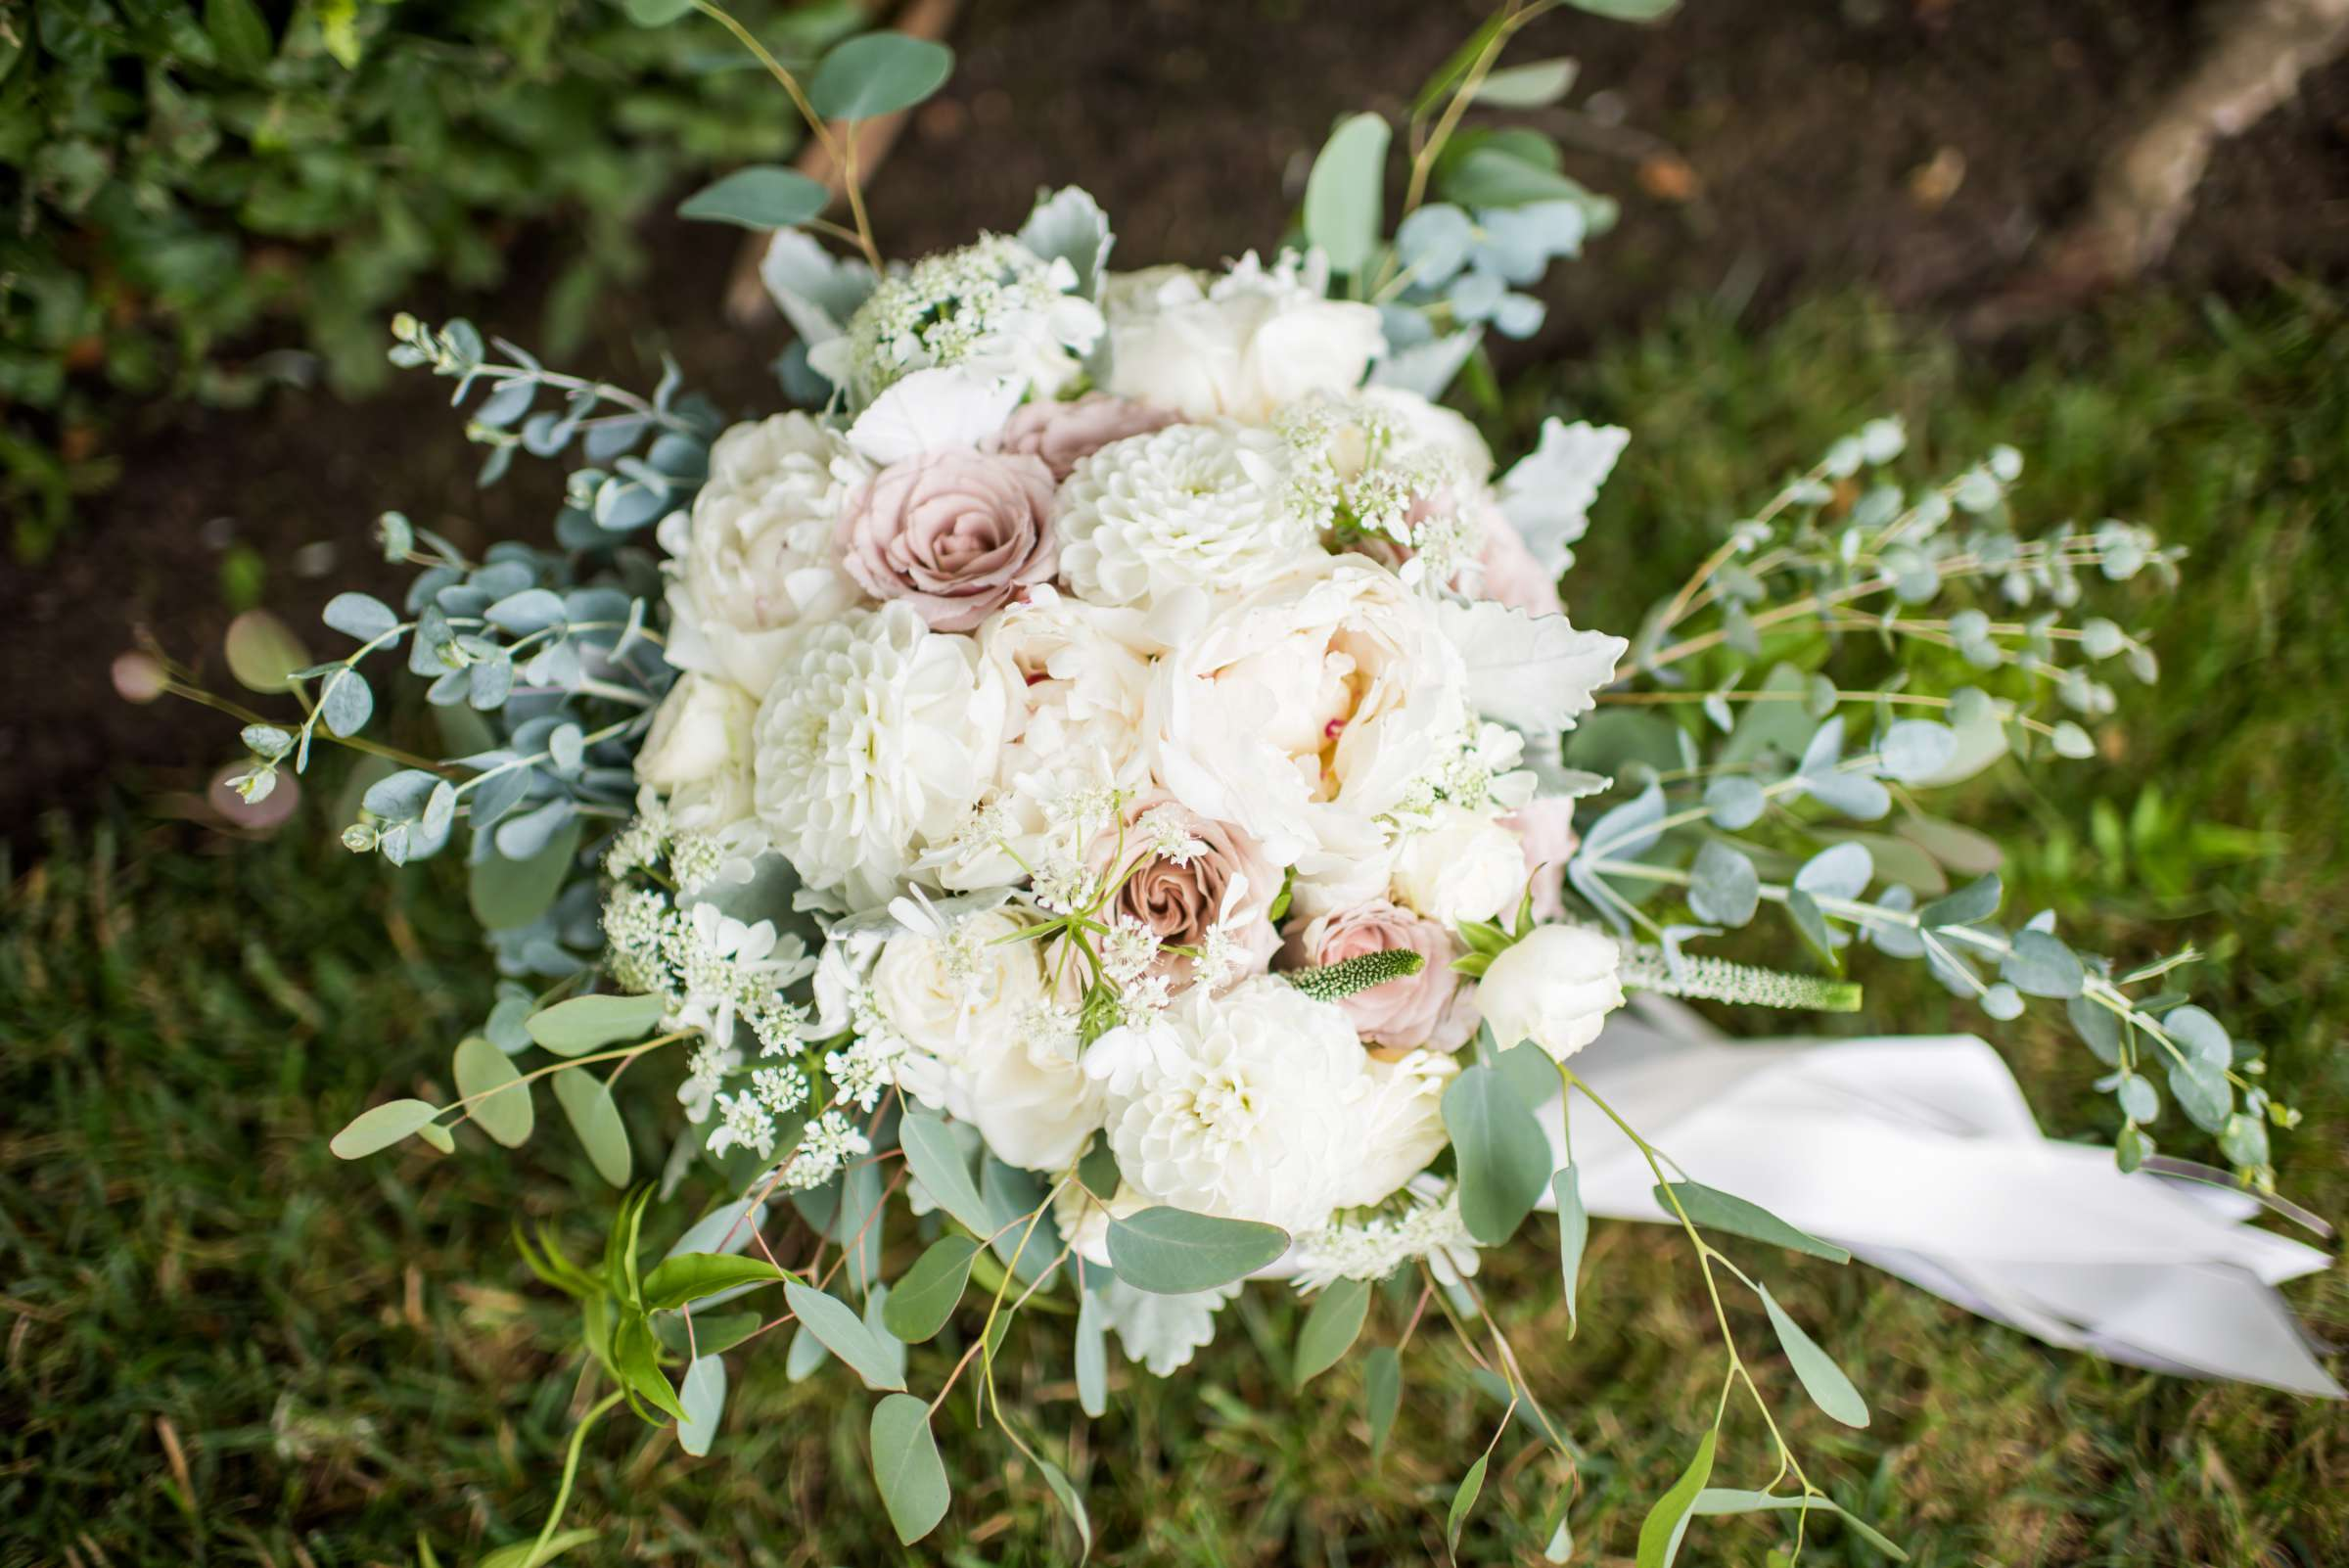 Scripps Seaside Forum Wedding coordinated by Lavish Weddings, Cindy and Justin Wedding Photo #381906 by True Photography